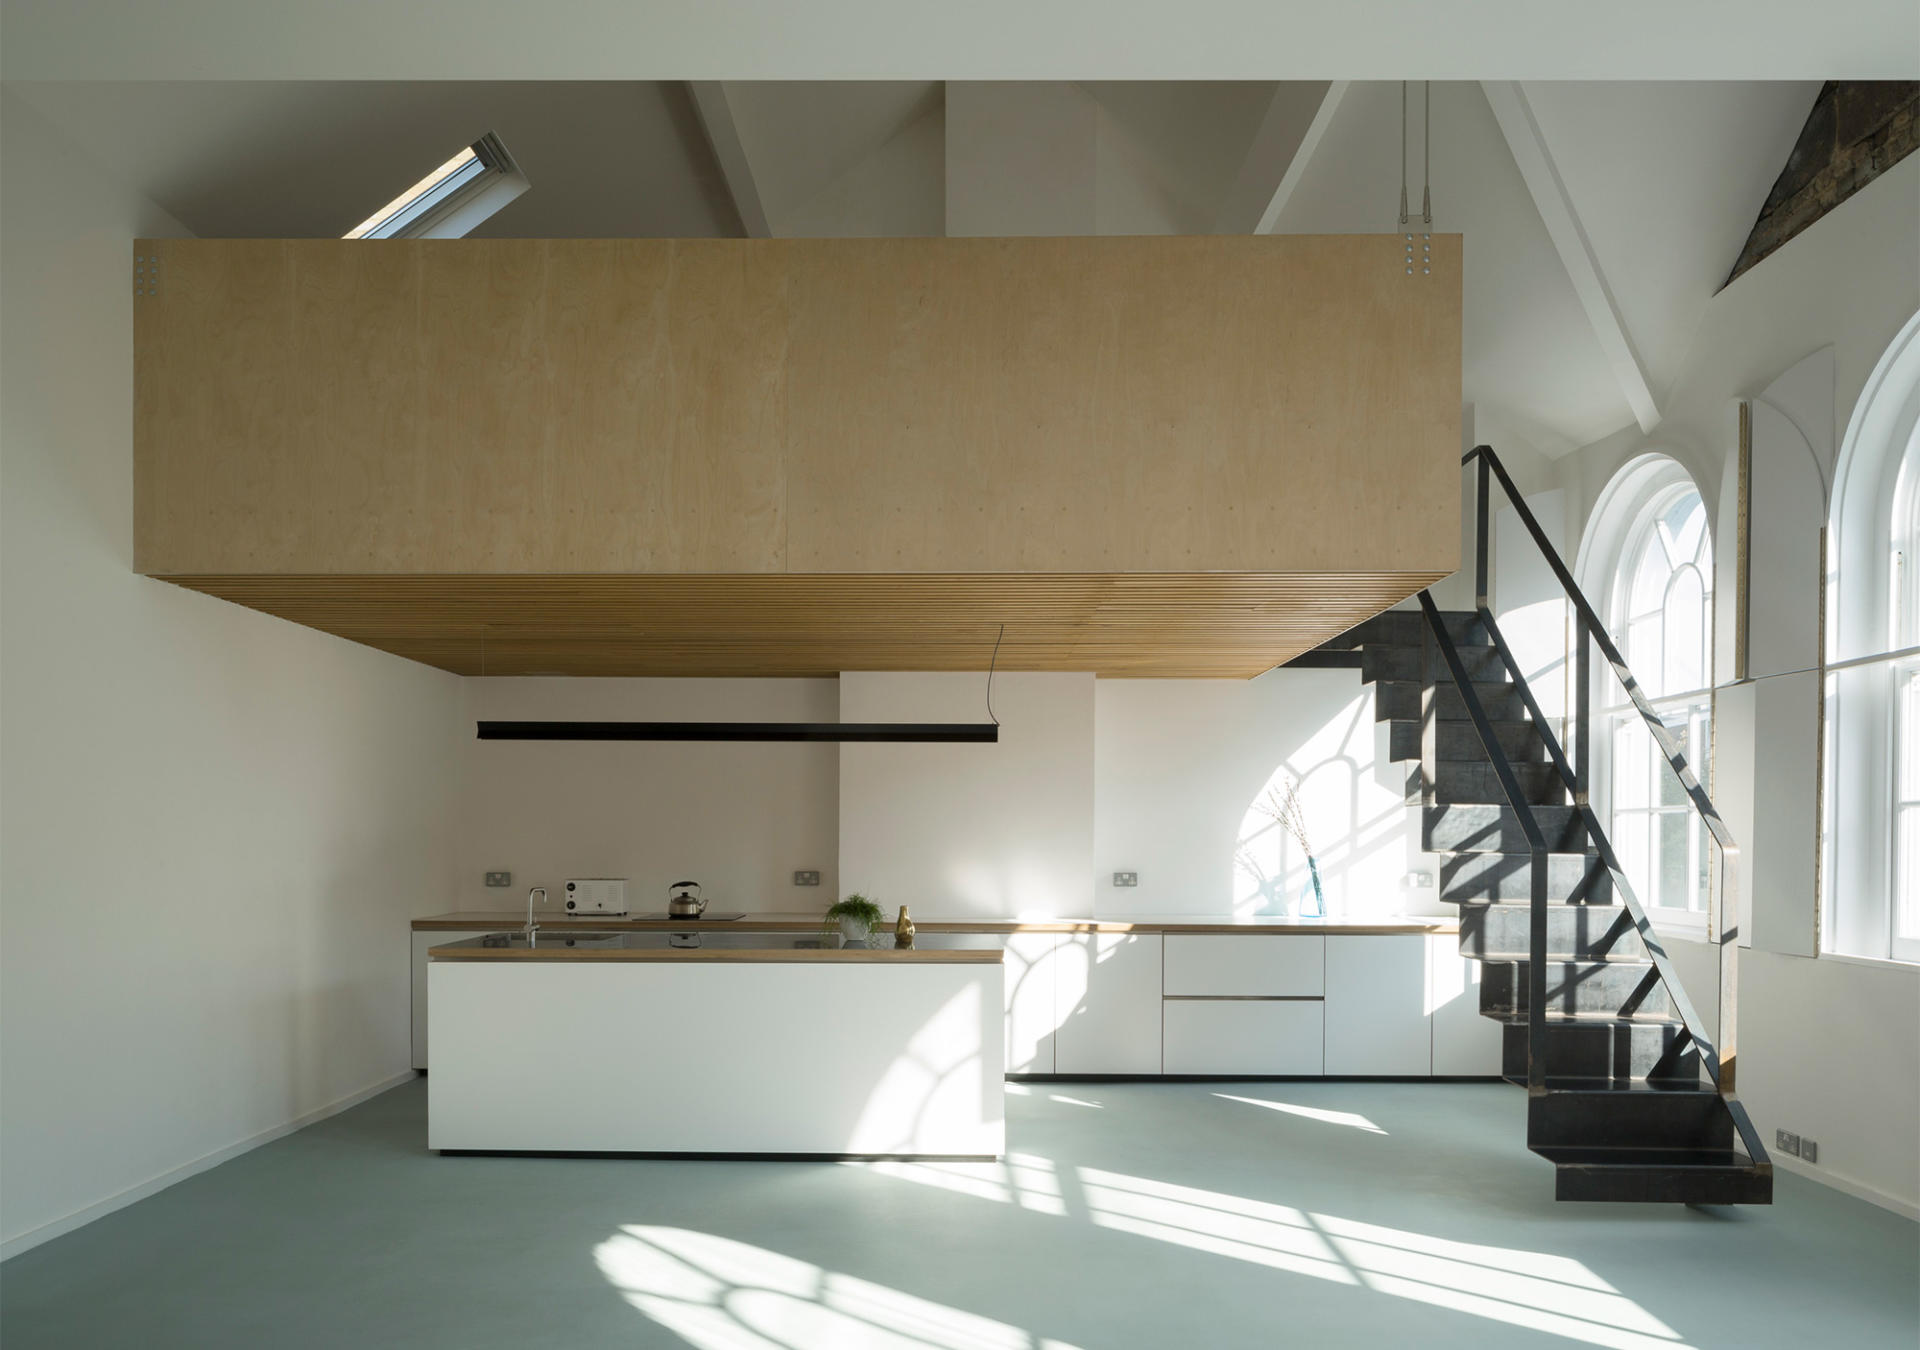 Phase 1 of Bavaria Road with Staircase designed by West Architecture